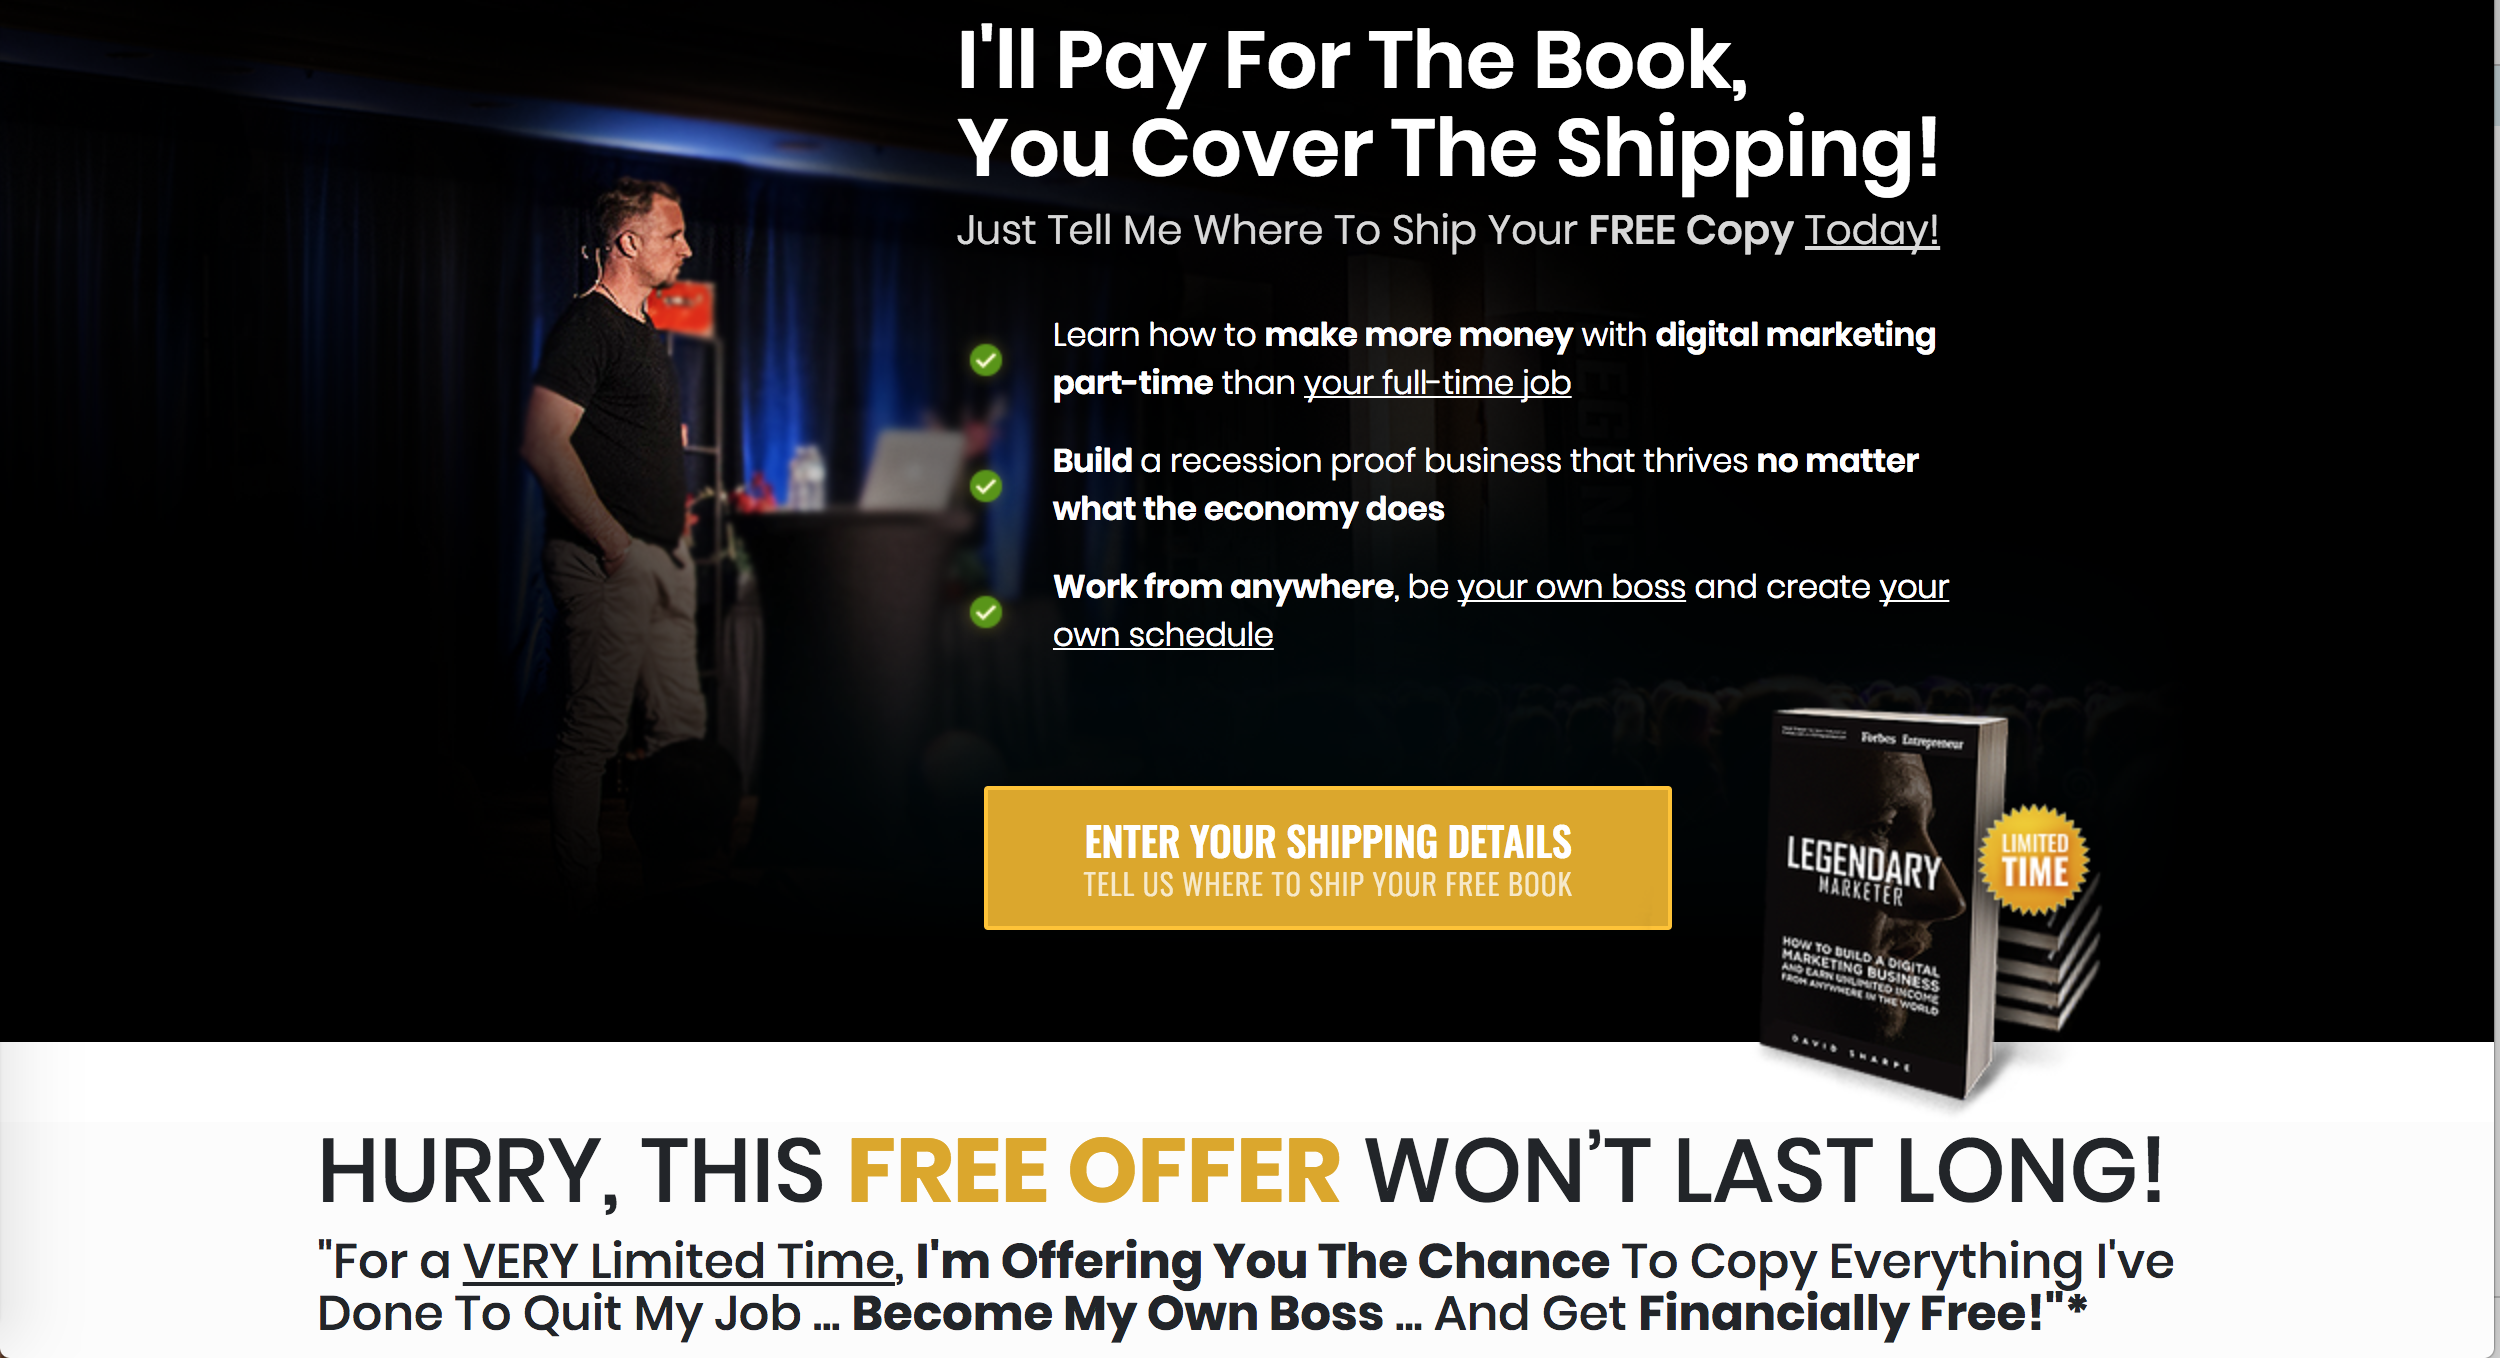 Internet Marketing Program Legendary Marketer Financing No Credit Check